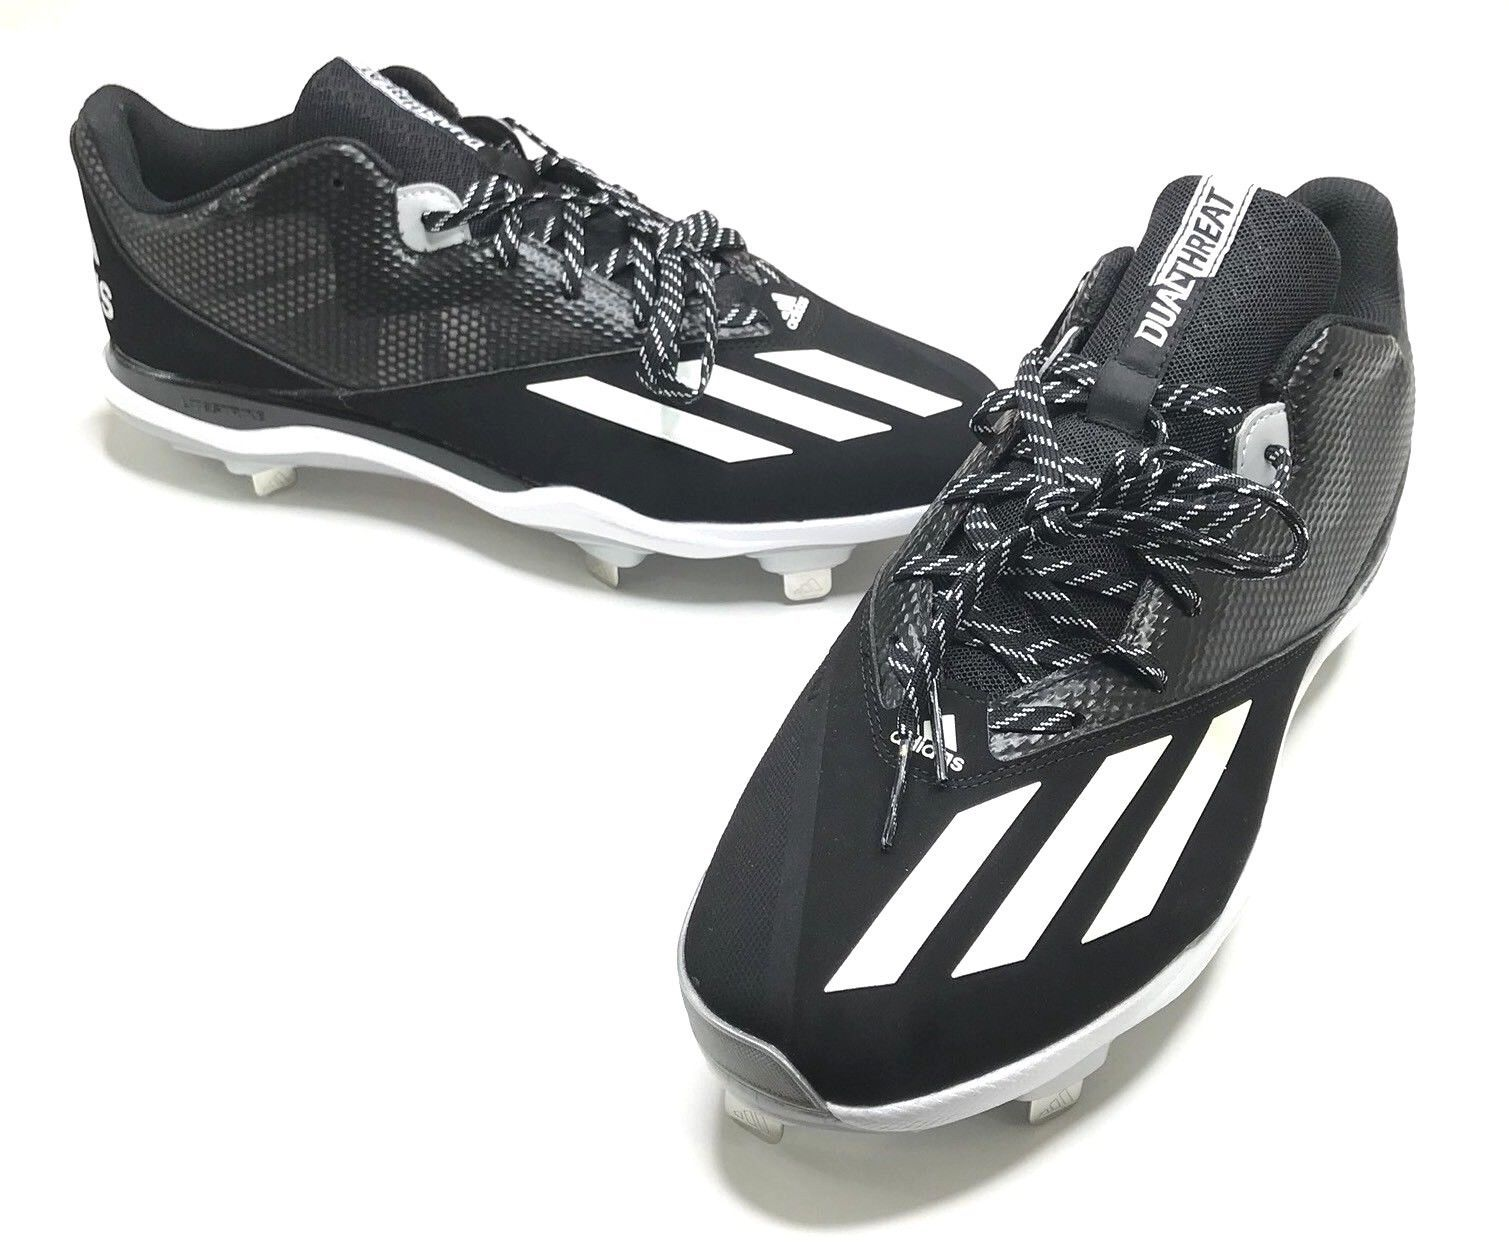 sale retailer d1389 f7d41 Adidas Dual Threat Cleats NEW Men Size 13 and 50 similar ite